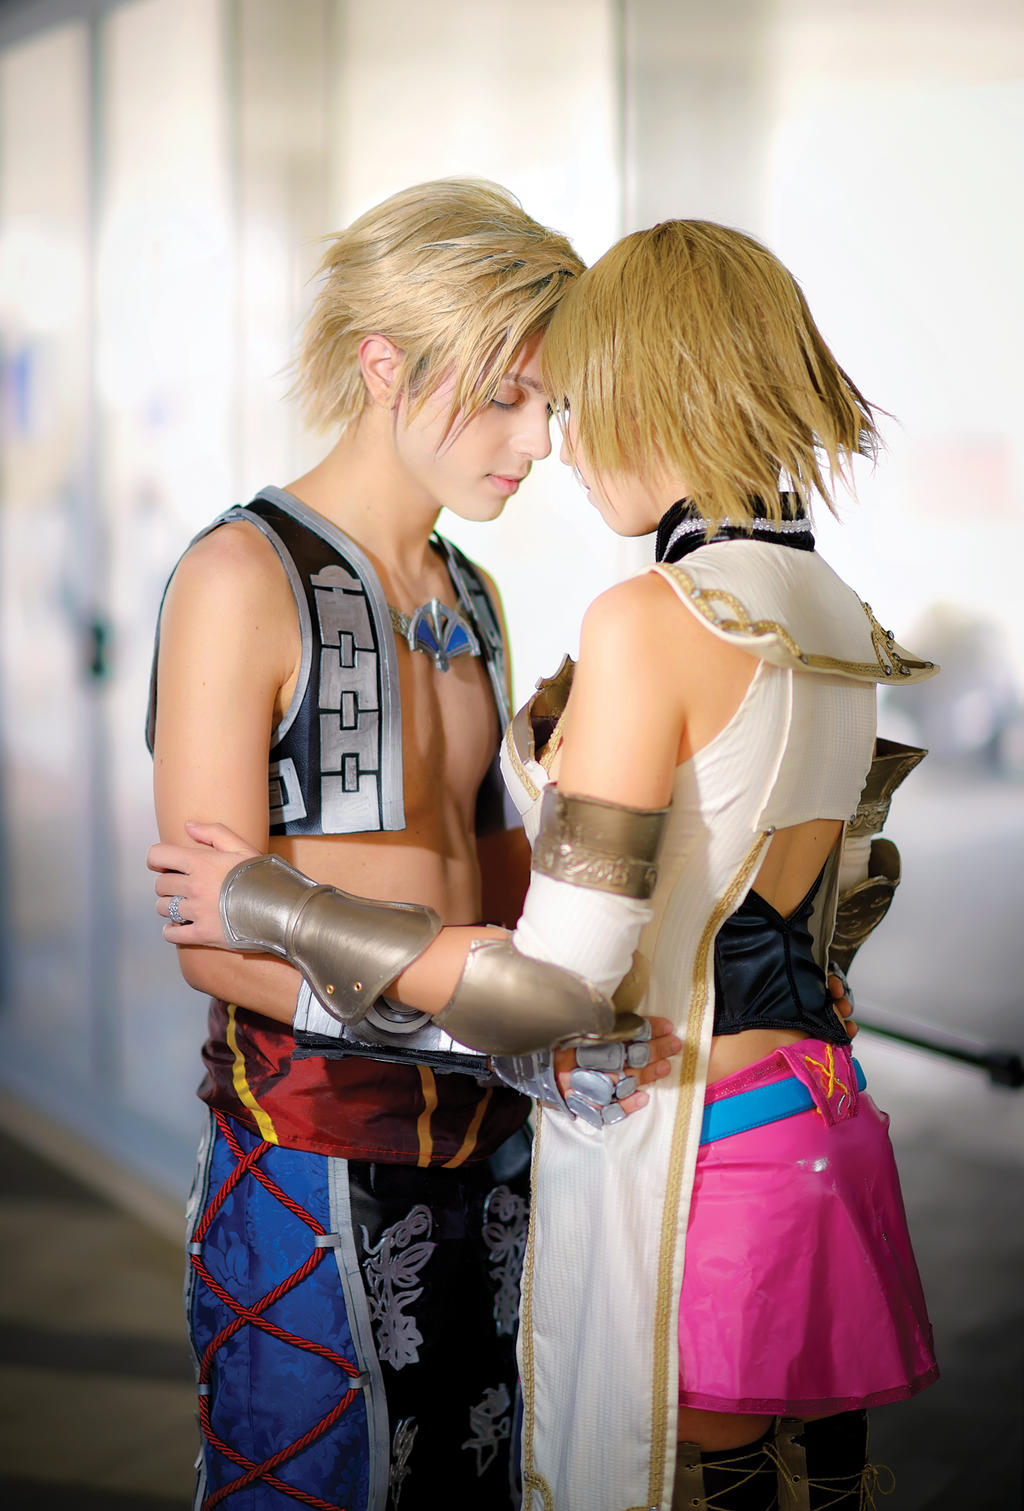 Vaan and Ashe Cosplay, FFXII. Together by hakucosplay